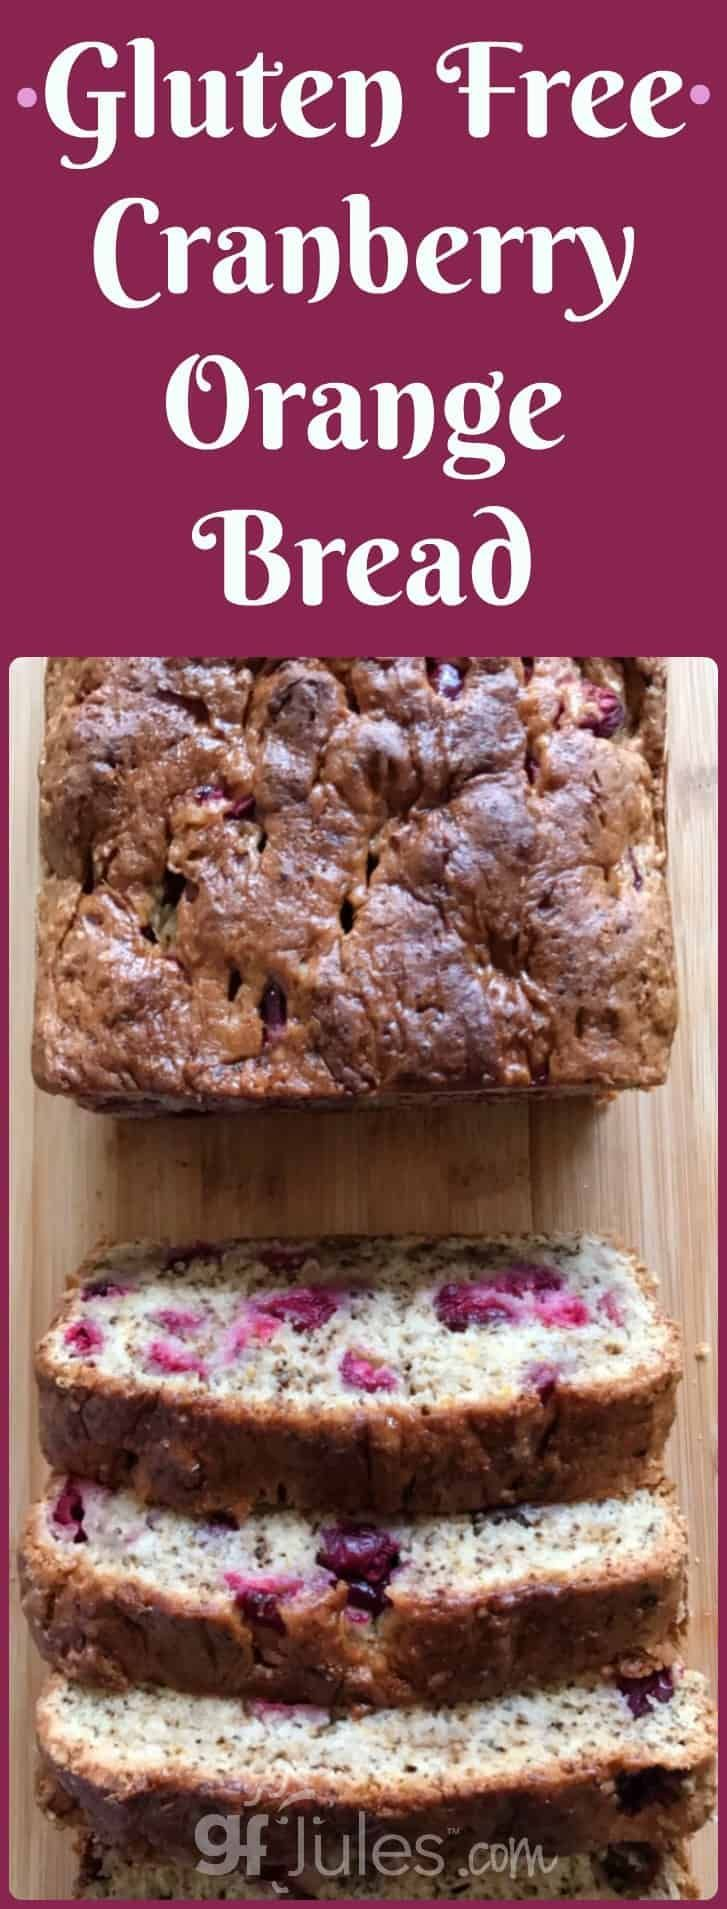 Gluten Free Cranberry Orange Moist Not Gritty W Gfjules 1 Rated Flour Recipe Gluten Free Treats Gluten Free Recipes Bread Dairy Free Recipes